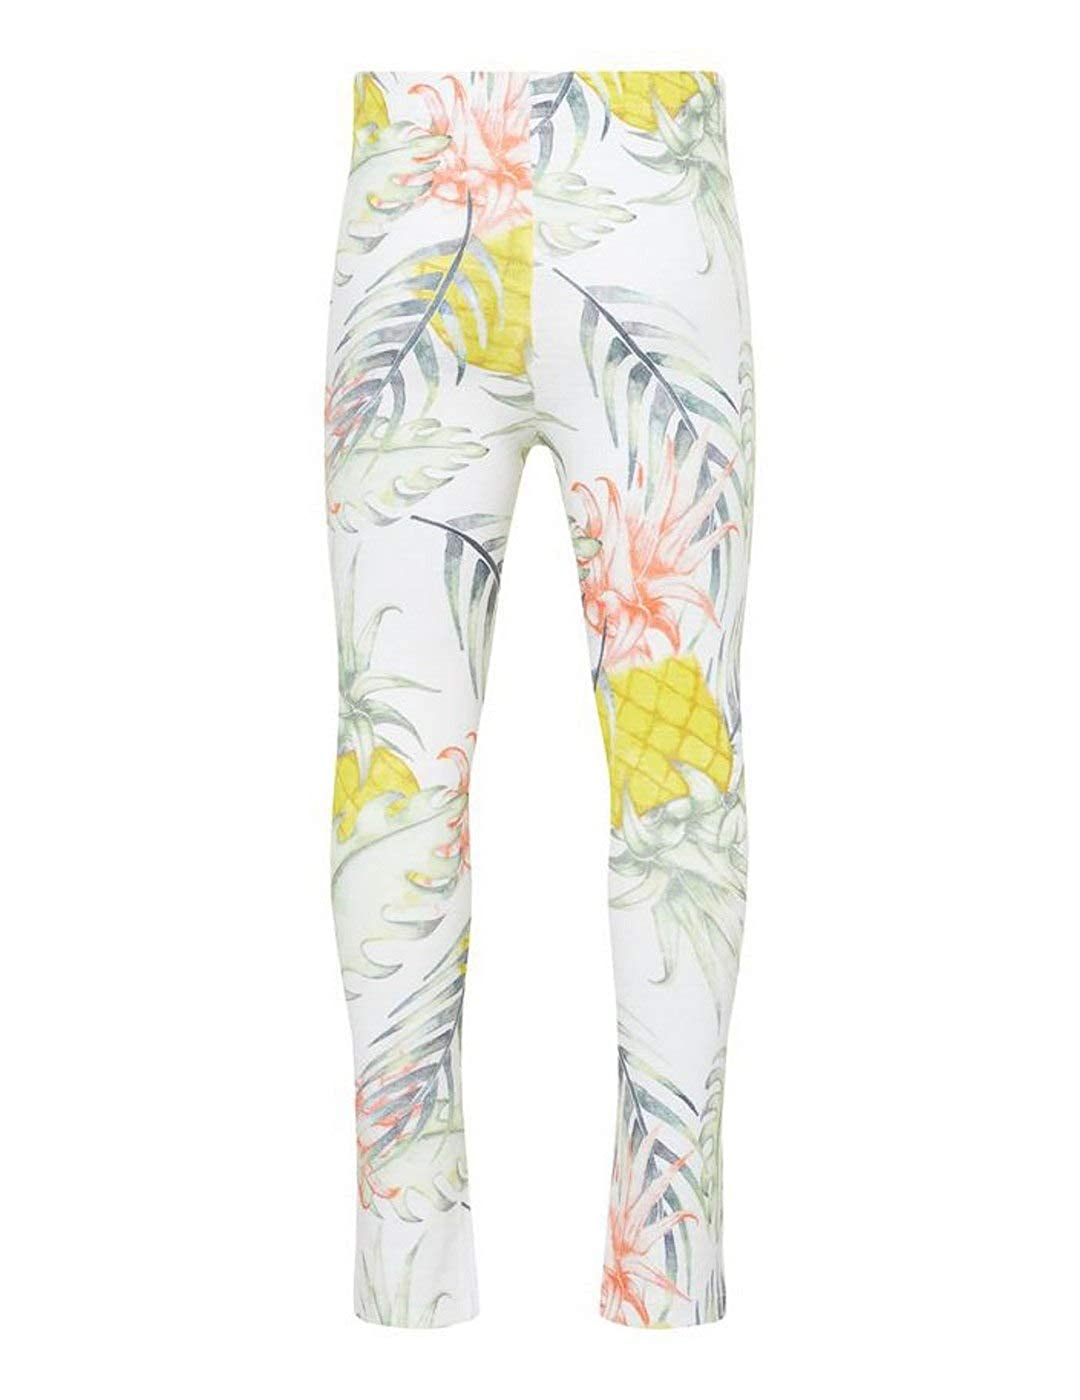 NAME IT M/ädchen Nmfjade Leggings